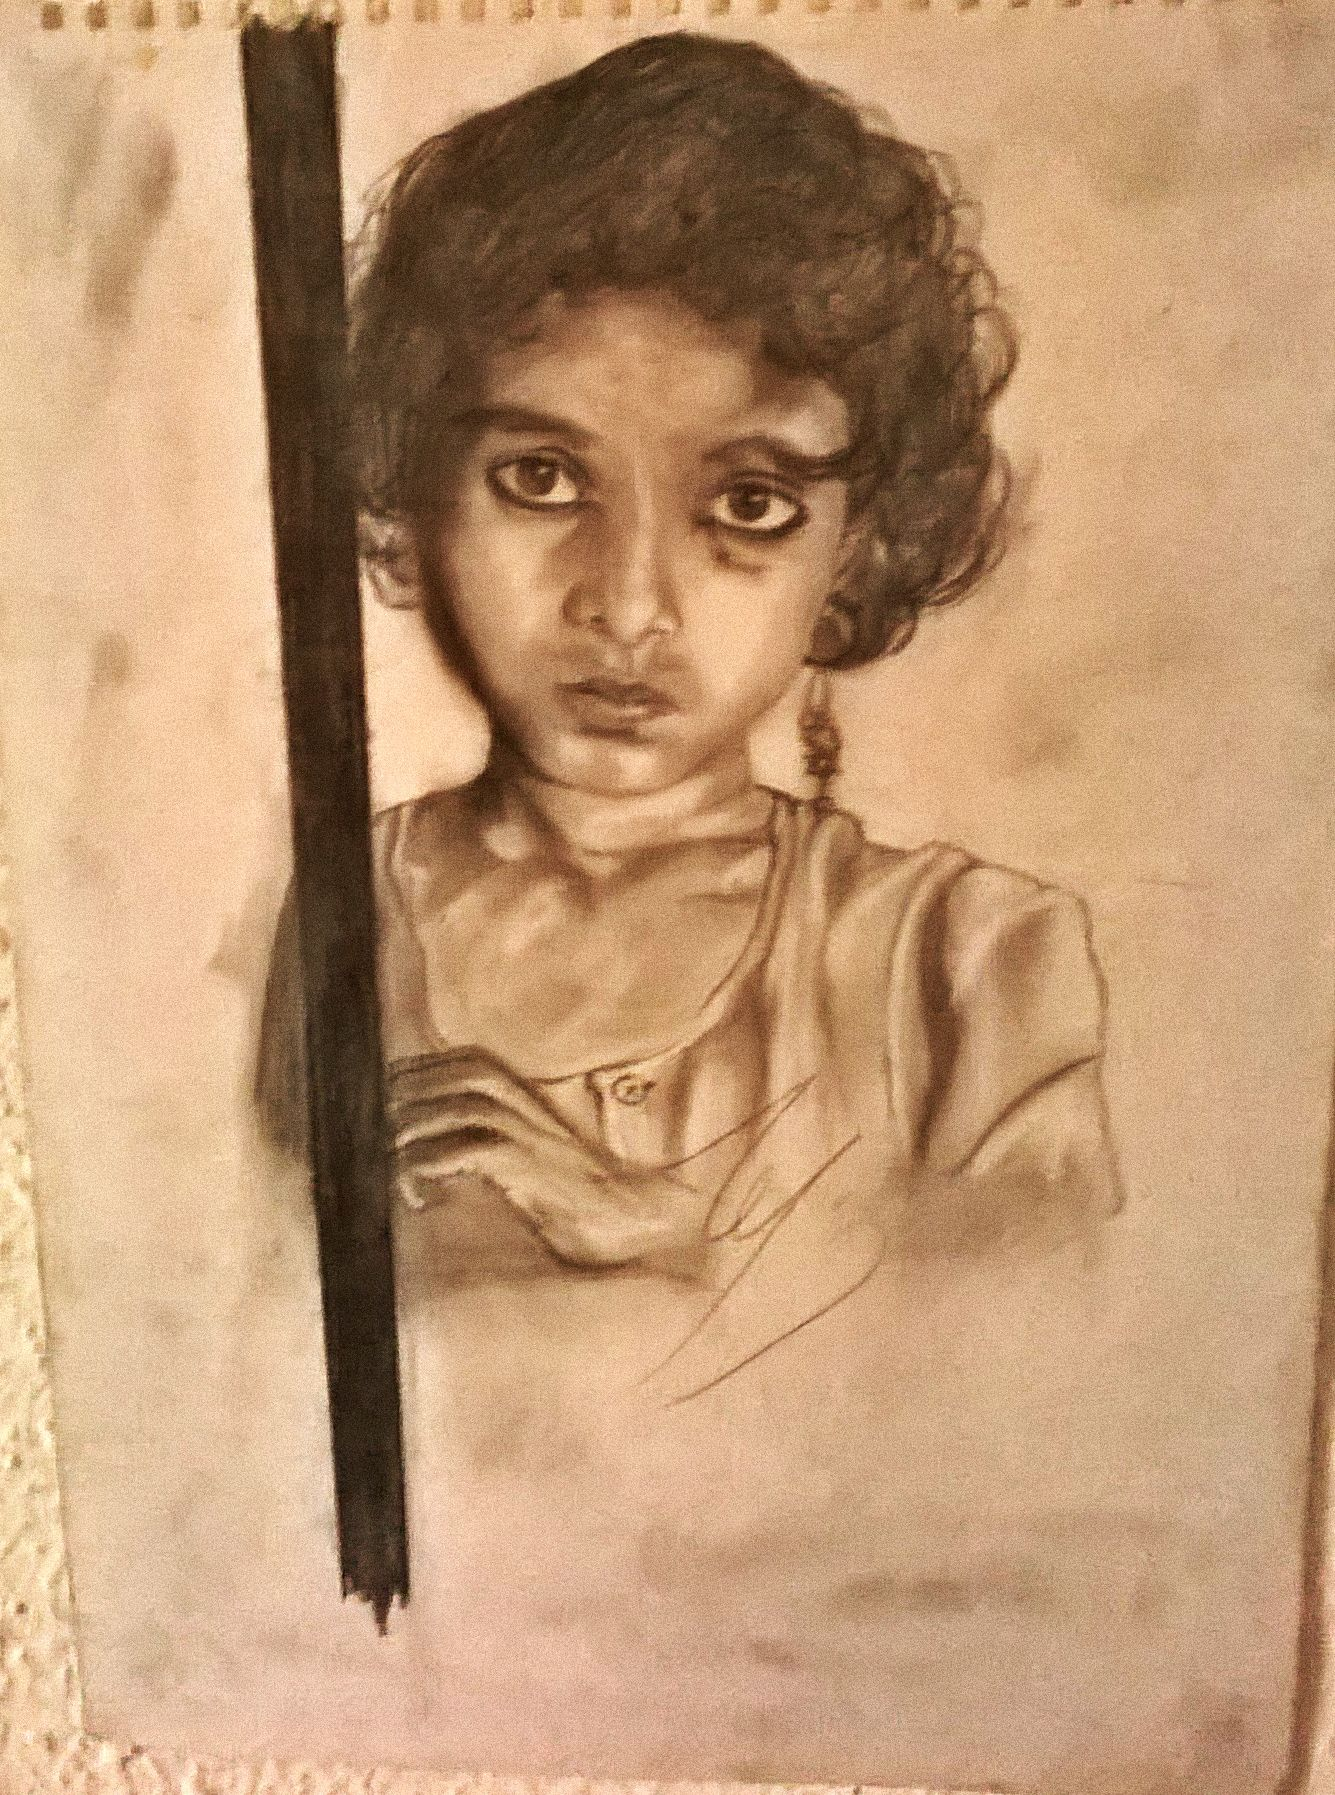 A sketch from a national geographic photograph of an indian girl from the slums of india